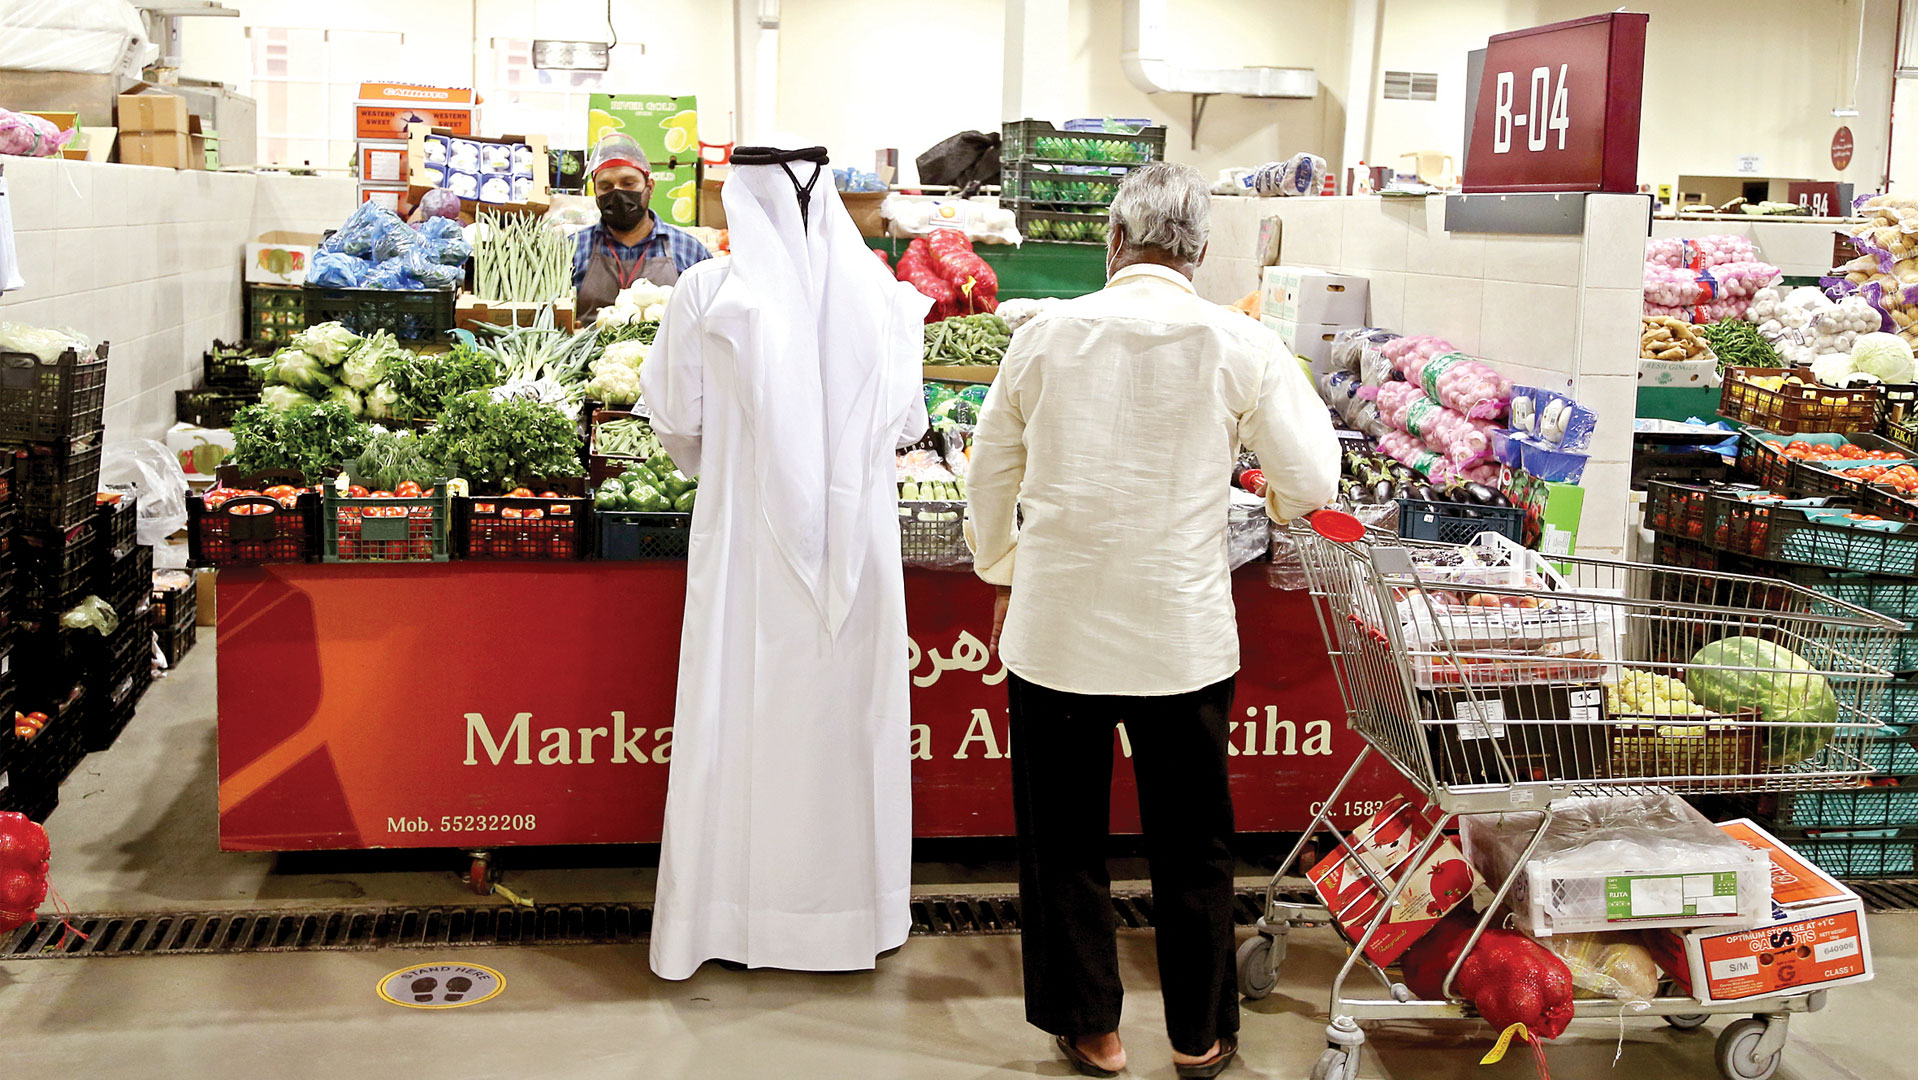 30% increase in vegetable prices in Sailiya Central Market